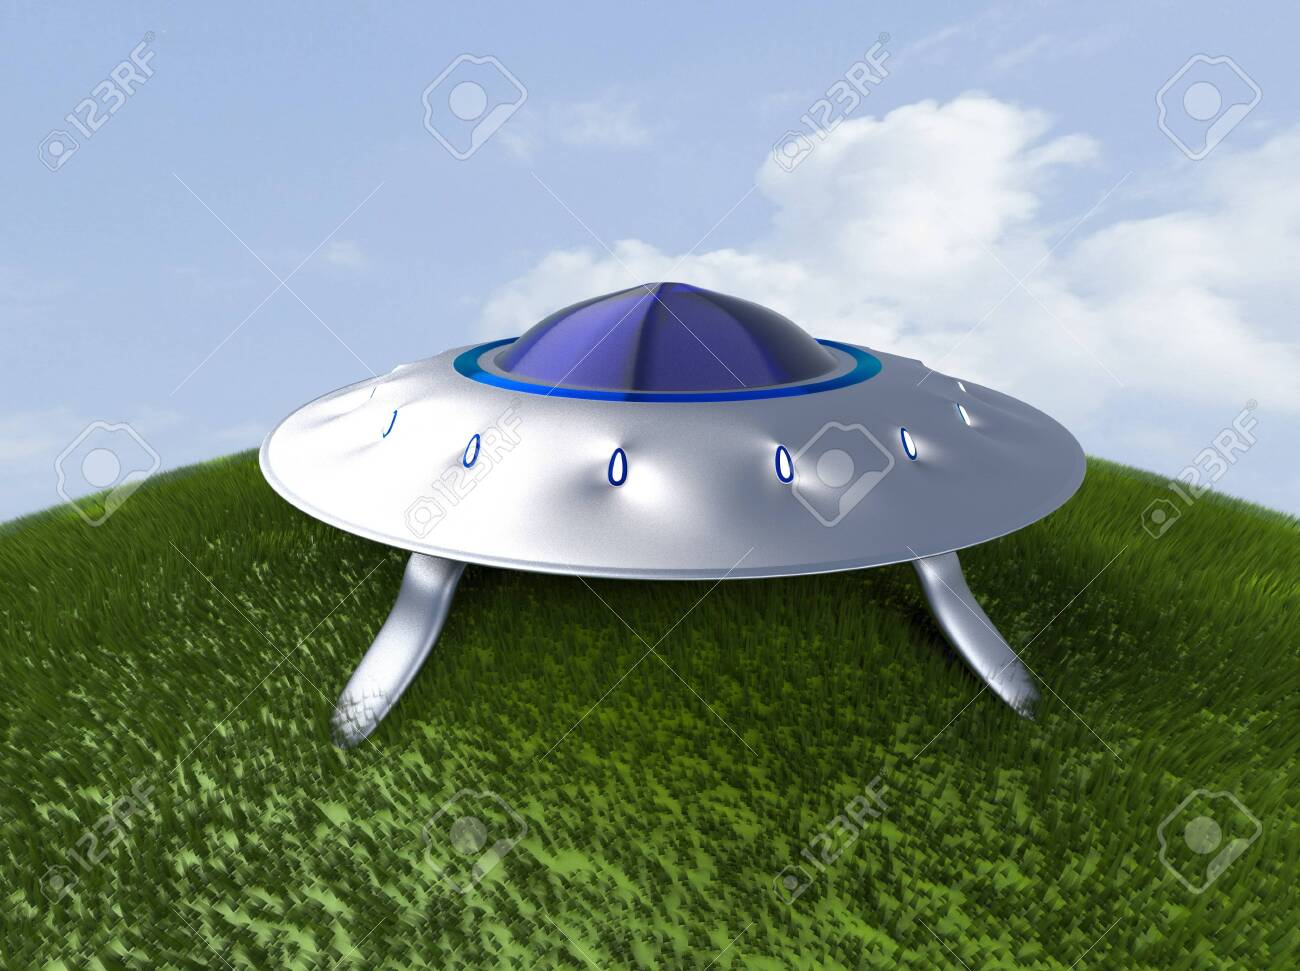 The alien space ship on grass,UFO,3d render. - 131122292